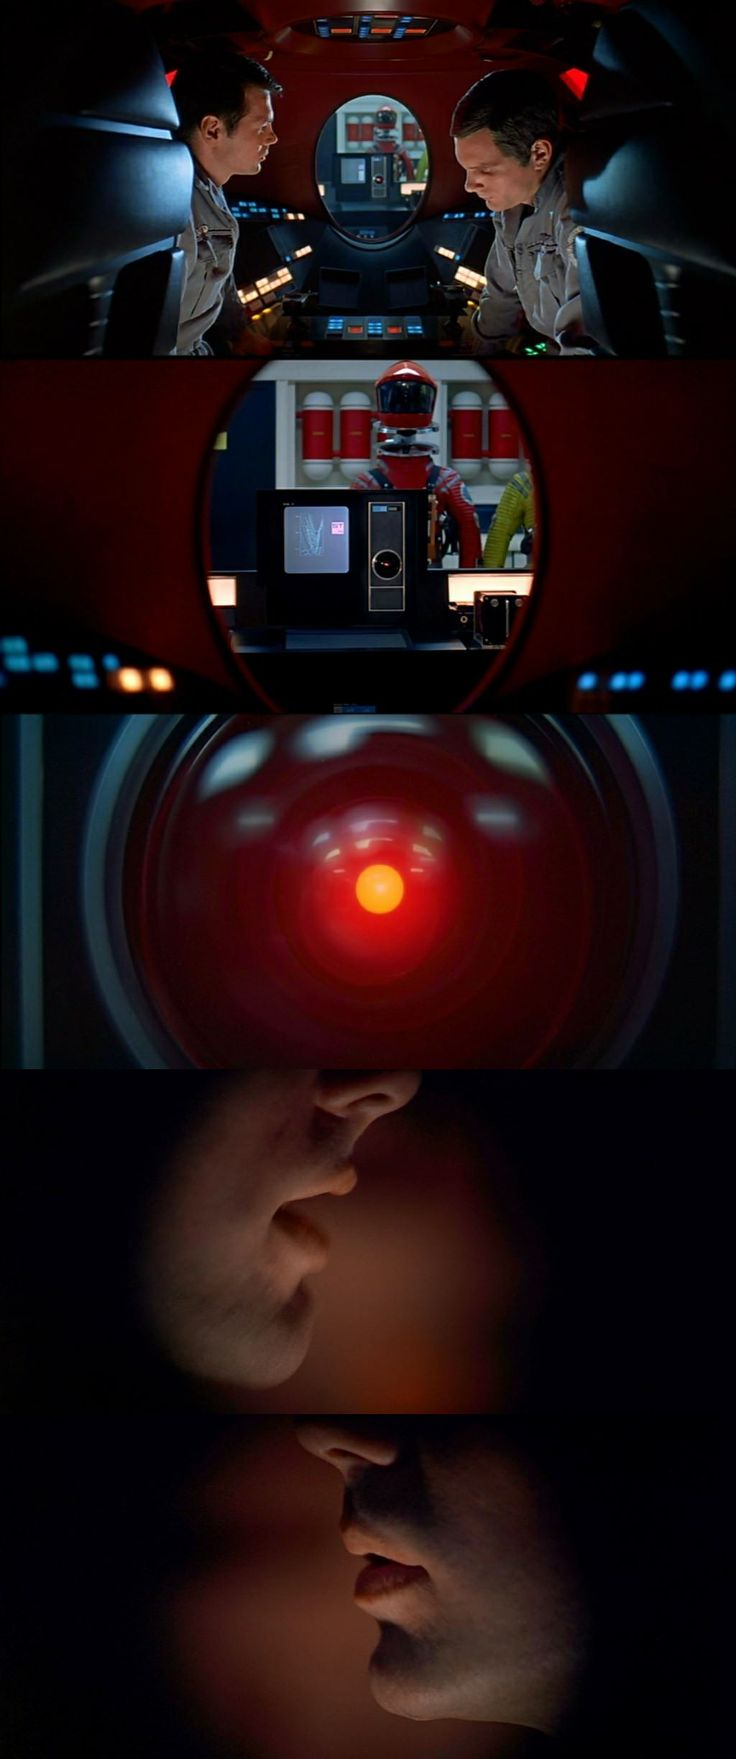 Dr. Poole and Dr. Bowman plan to disconnect HAL 9000 without it knowing it. Thus they hide in a Pod to prevent HAL from finding out. Nevertheless, they are unaware that HAL can actually read their lips. A quite scary situation ensues. 2001: A Space Odyssey 1968